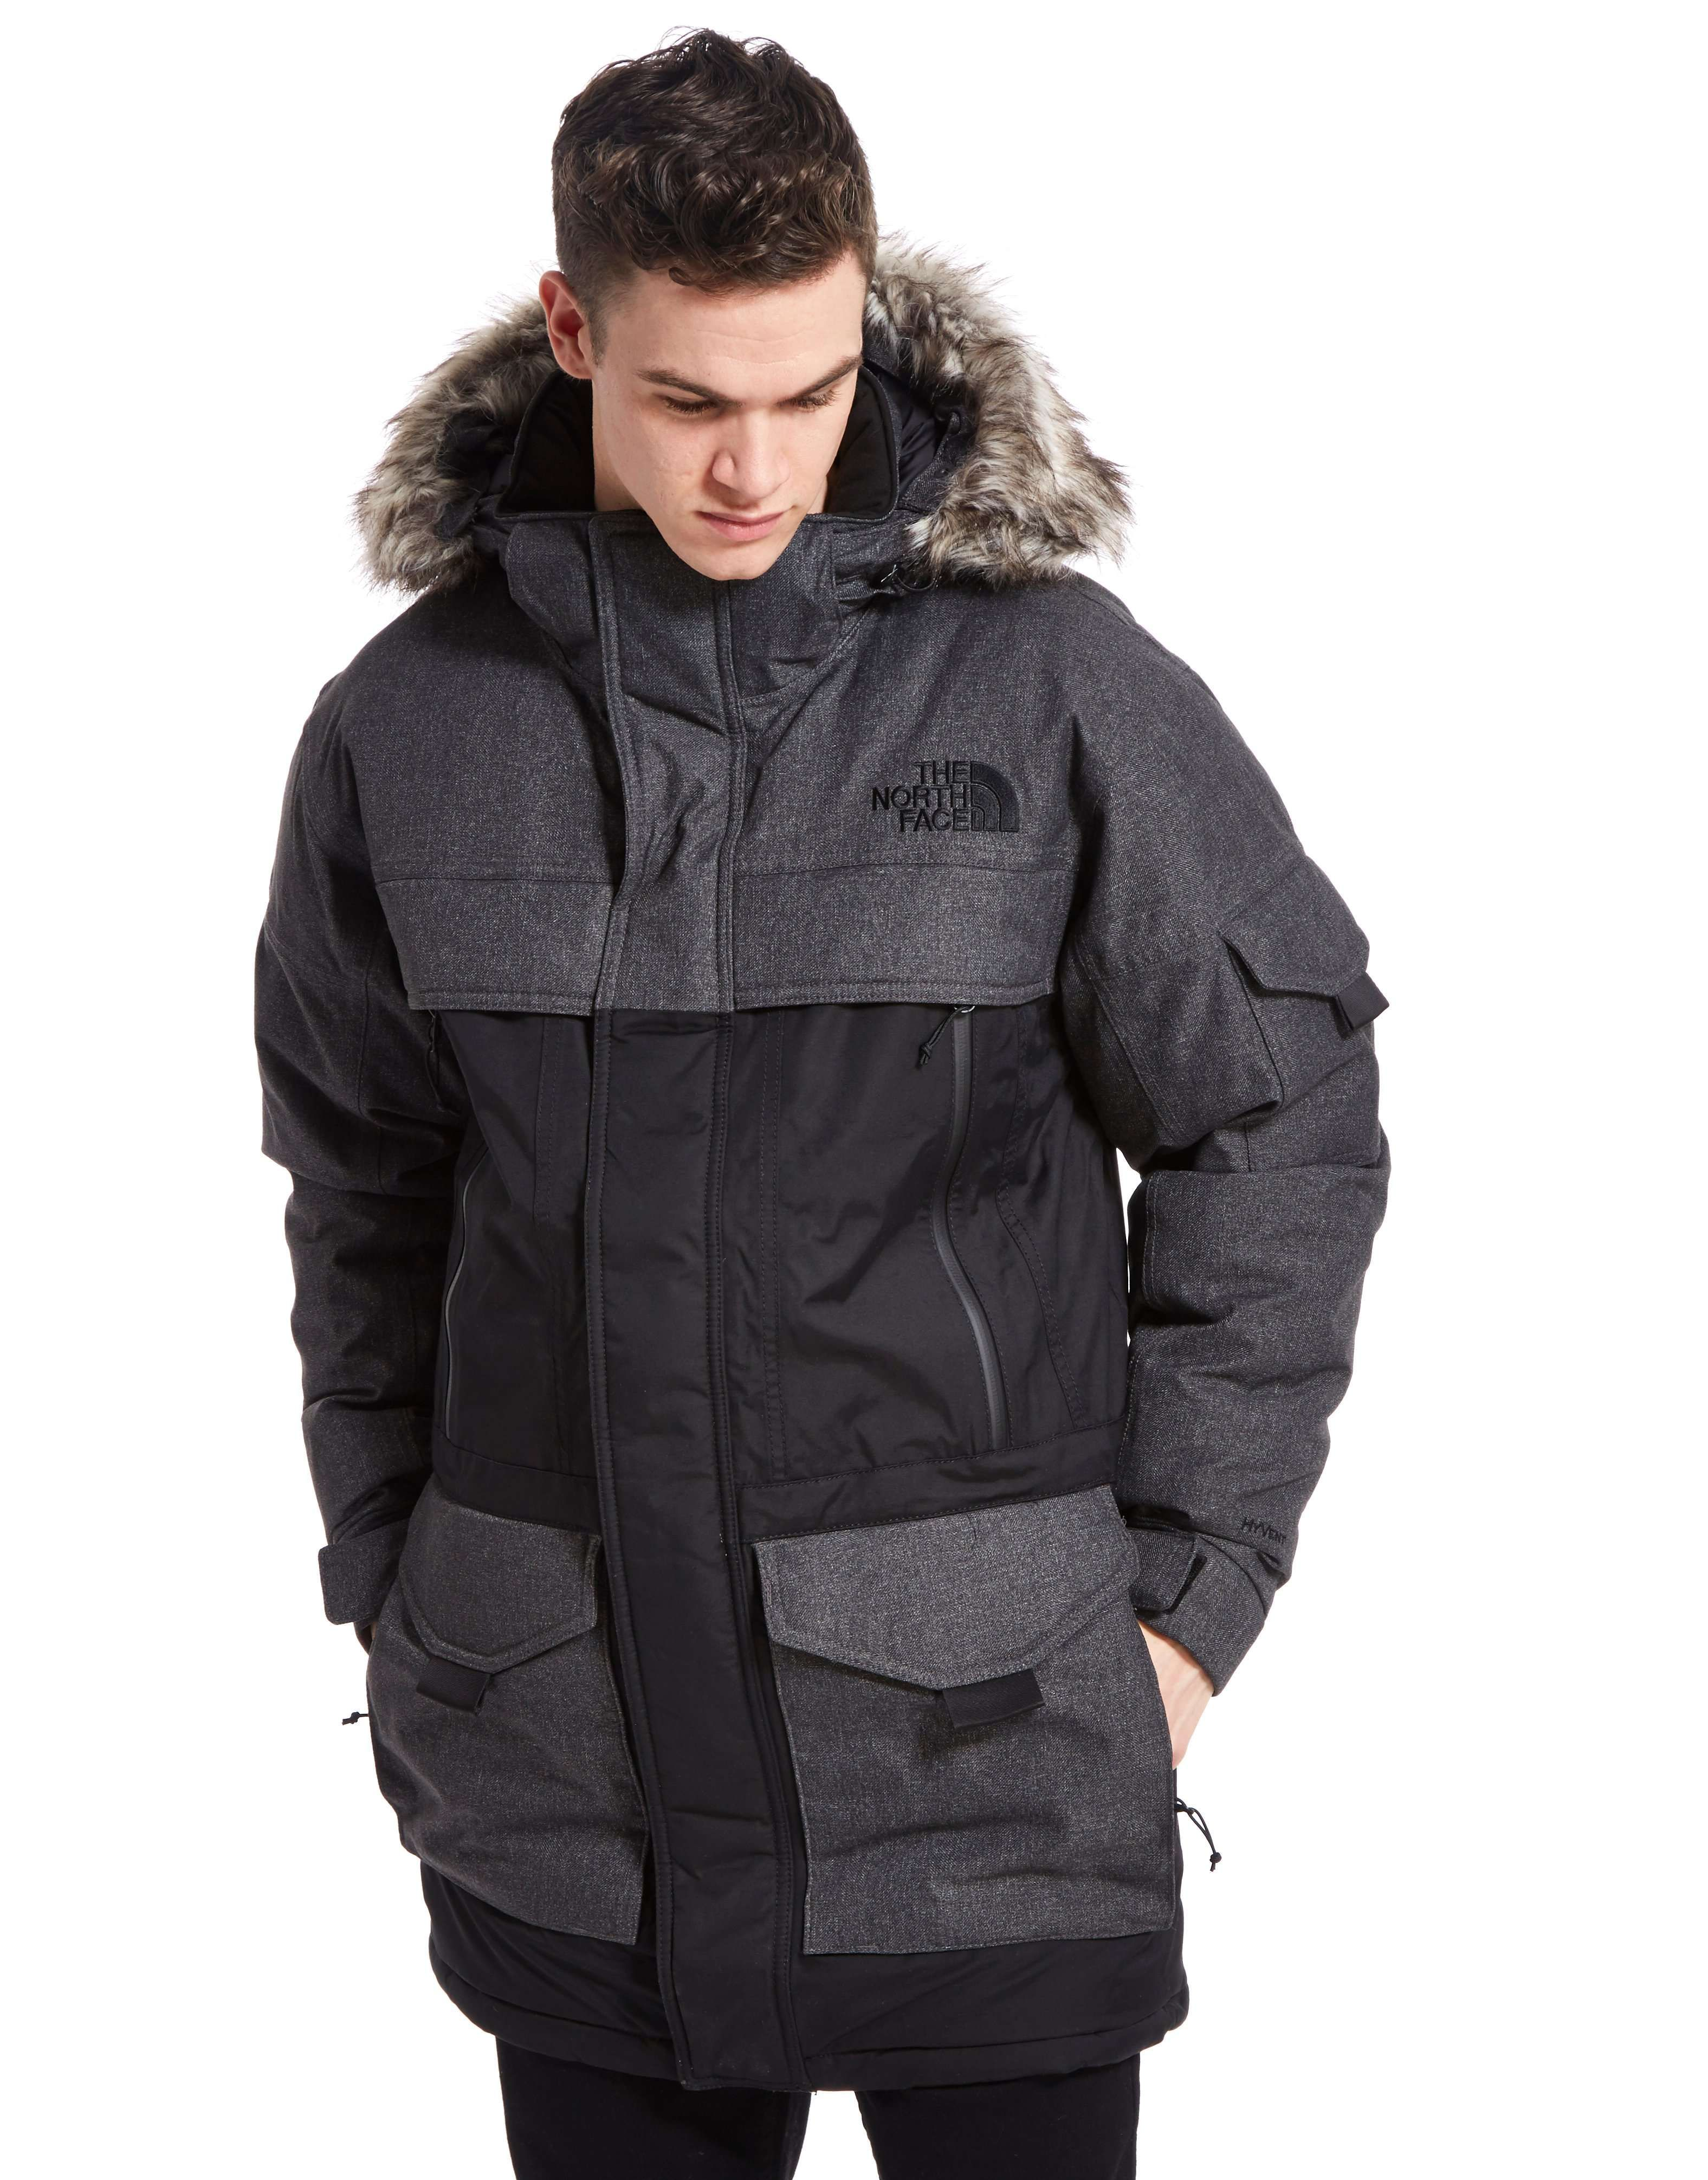 Fashion Europe The North Face Parka Jacket Mcmurdo Ii Designed